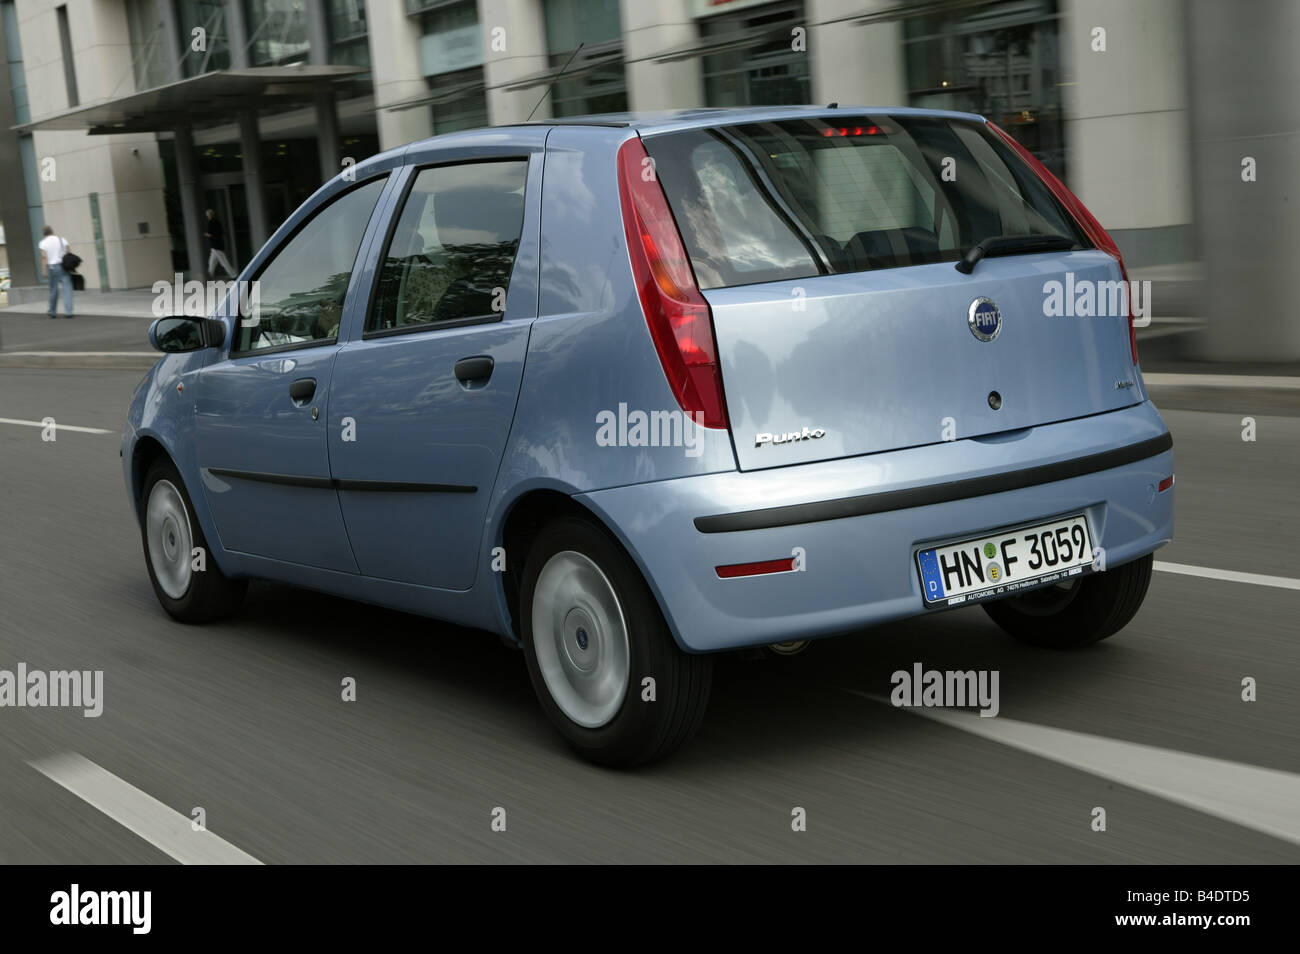 car fiat punto 1 3 jtd small approx limousine light stock photo royalty free image. Black Bedroom Furniture Sets. Home Design Ideas